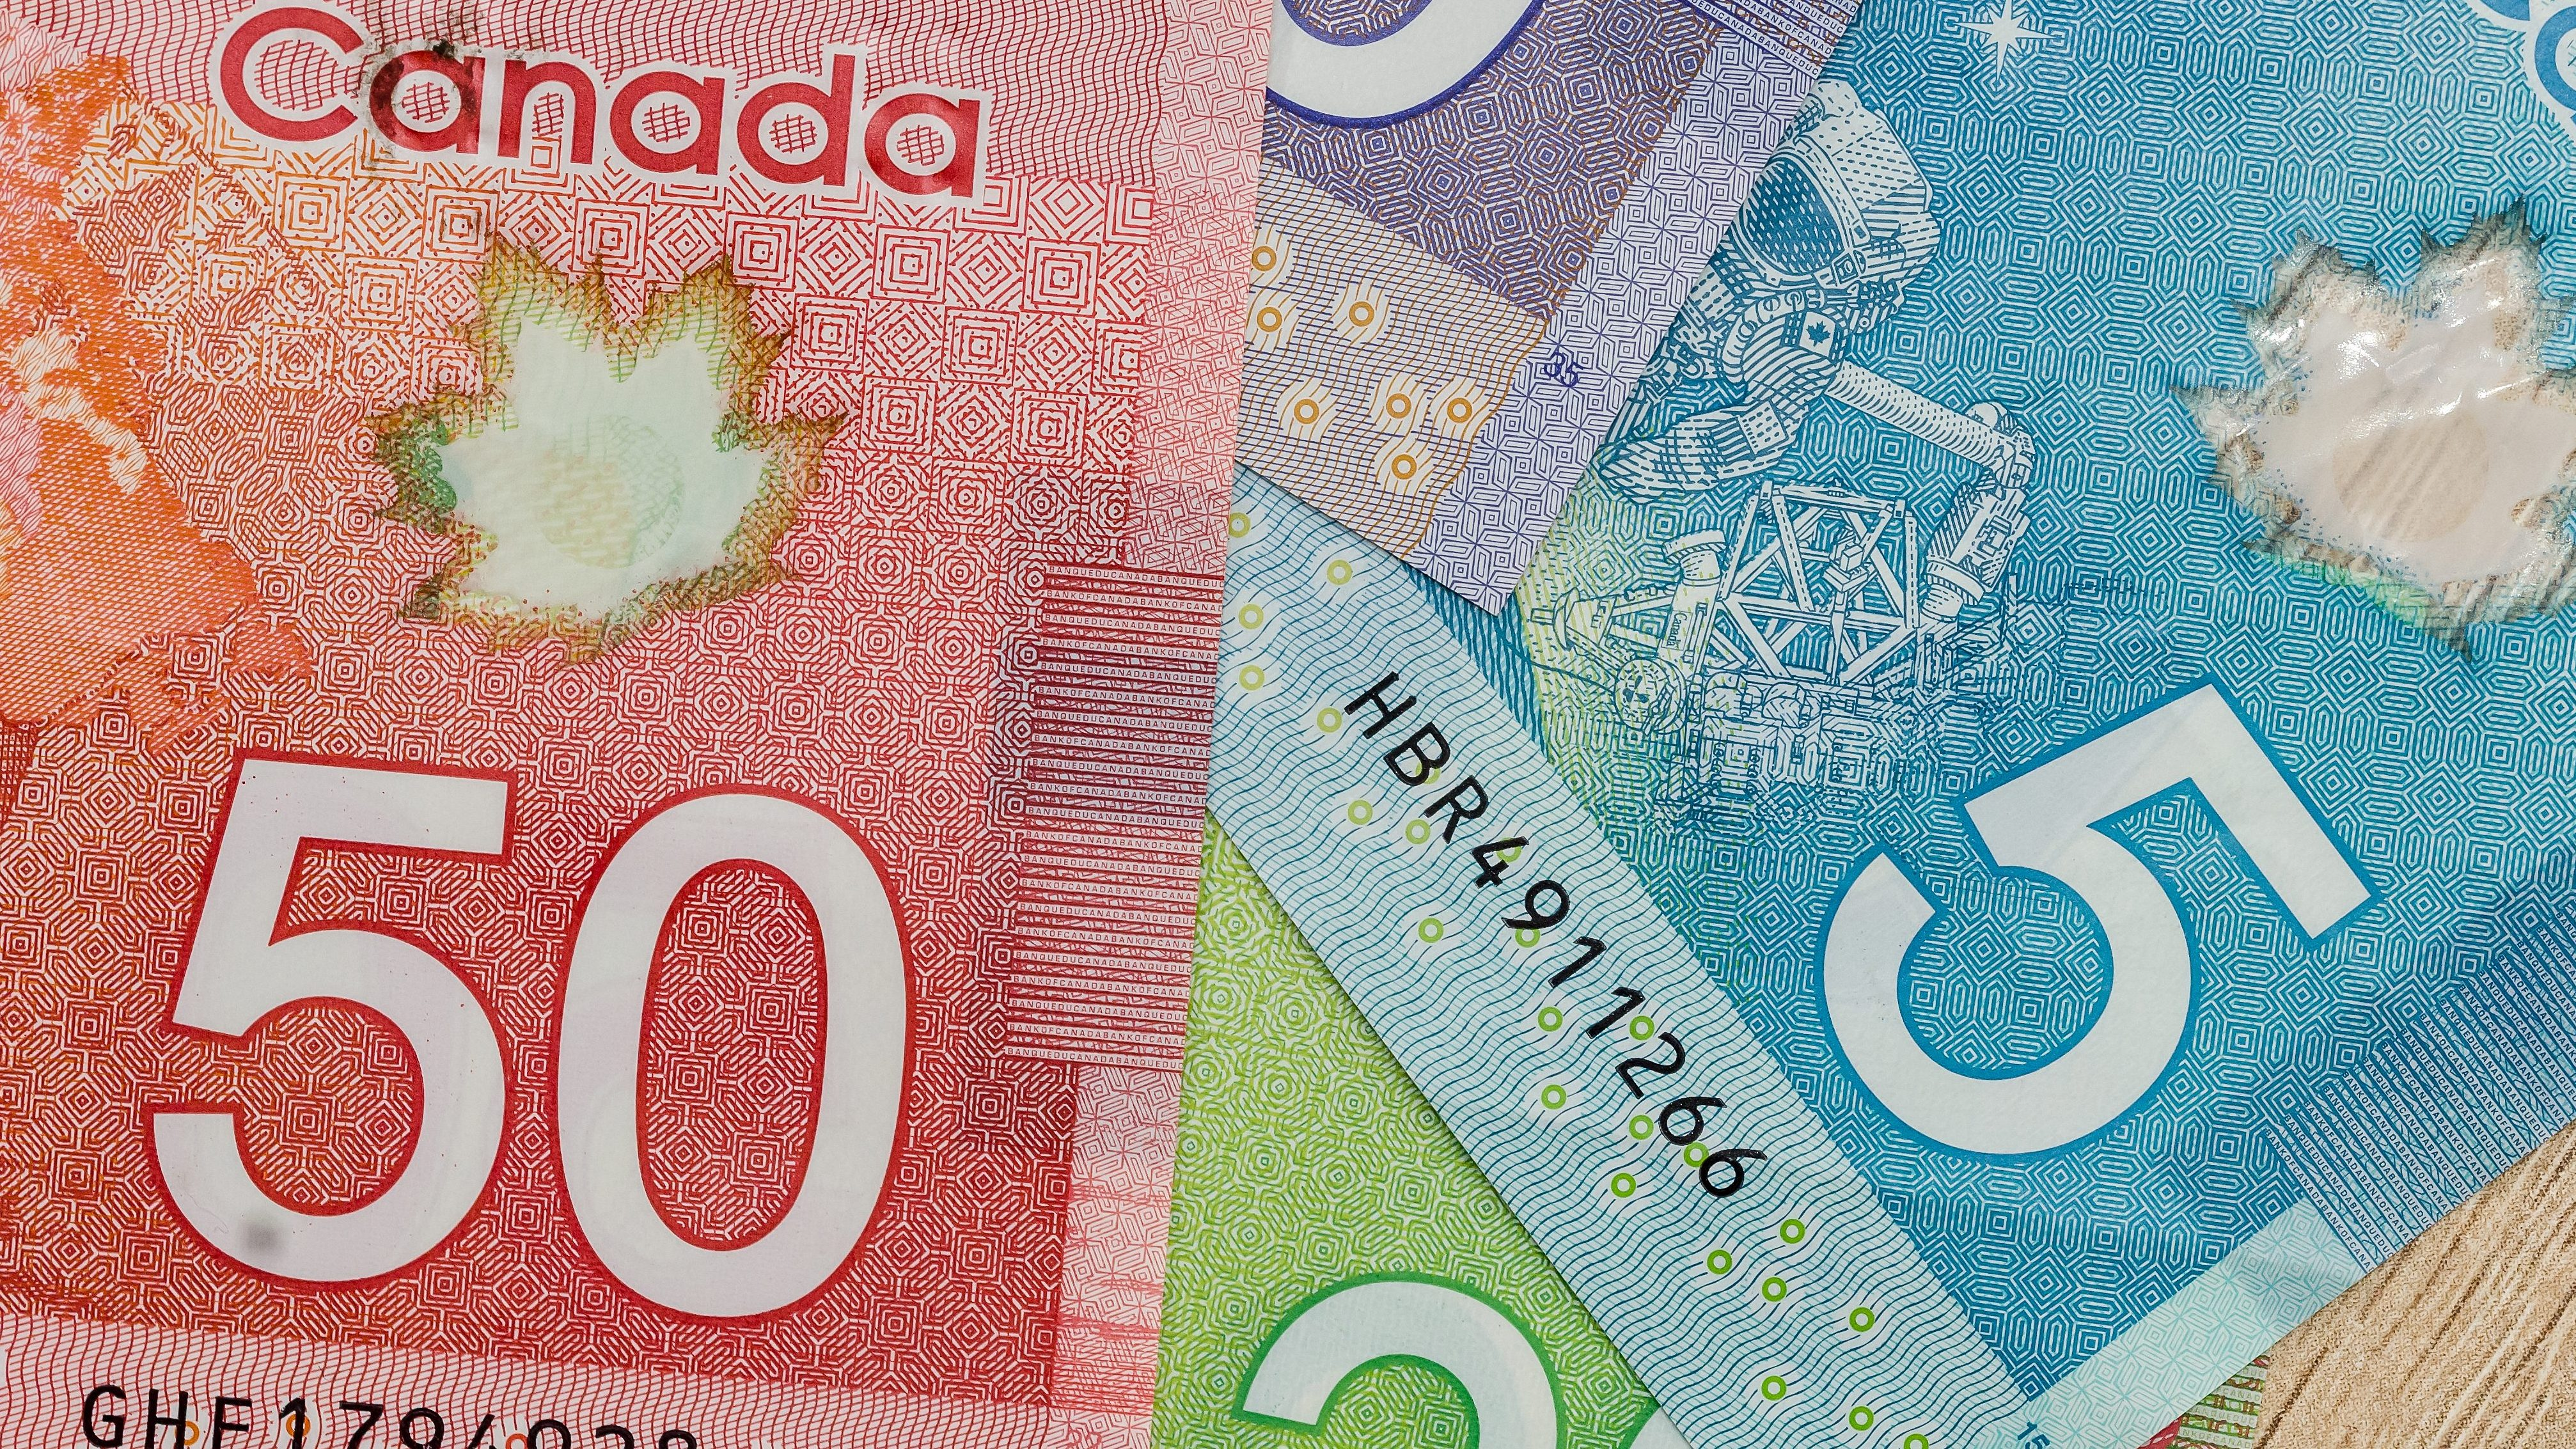 British Columbians Could Get Covid 19 Relief Money By Christmas Premier News 1130